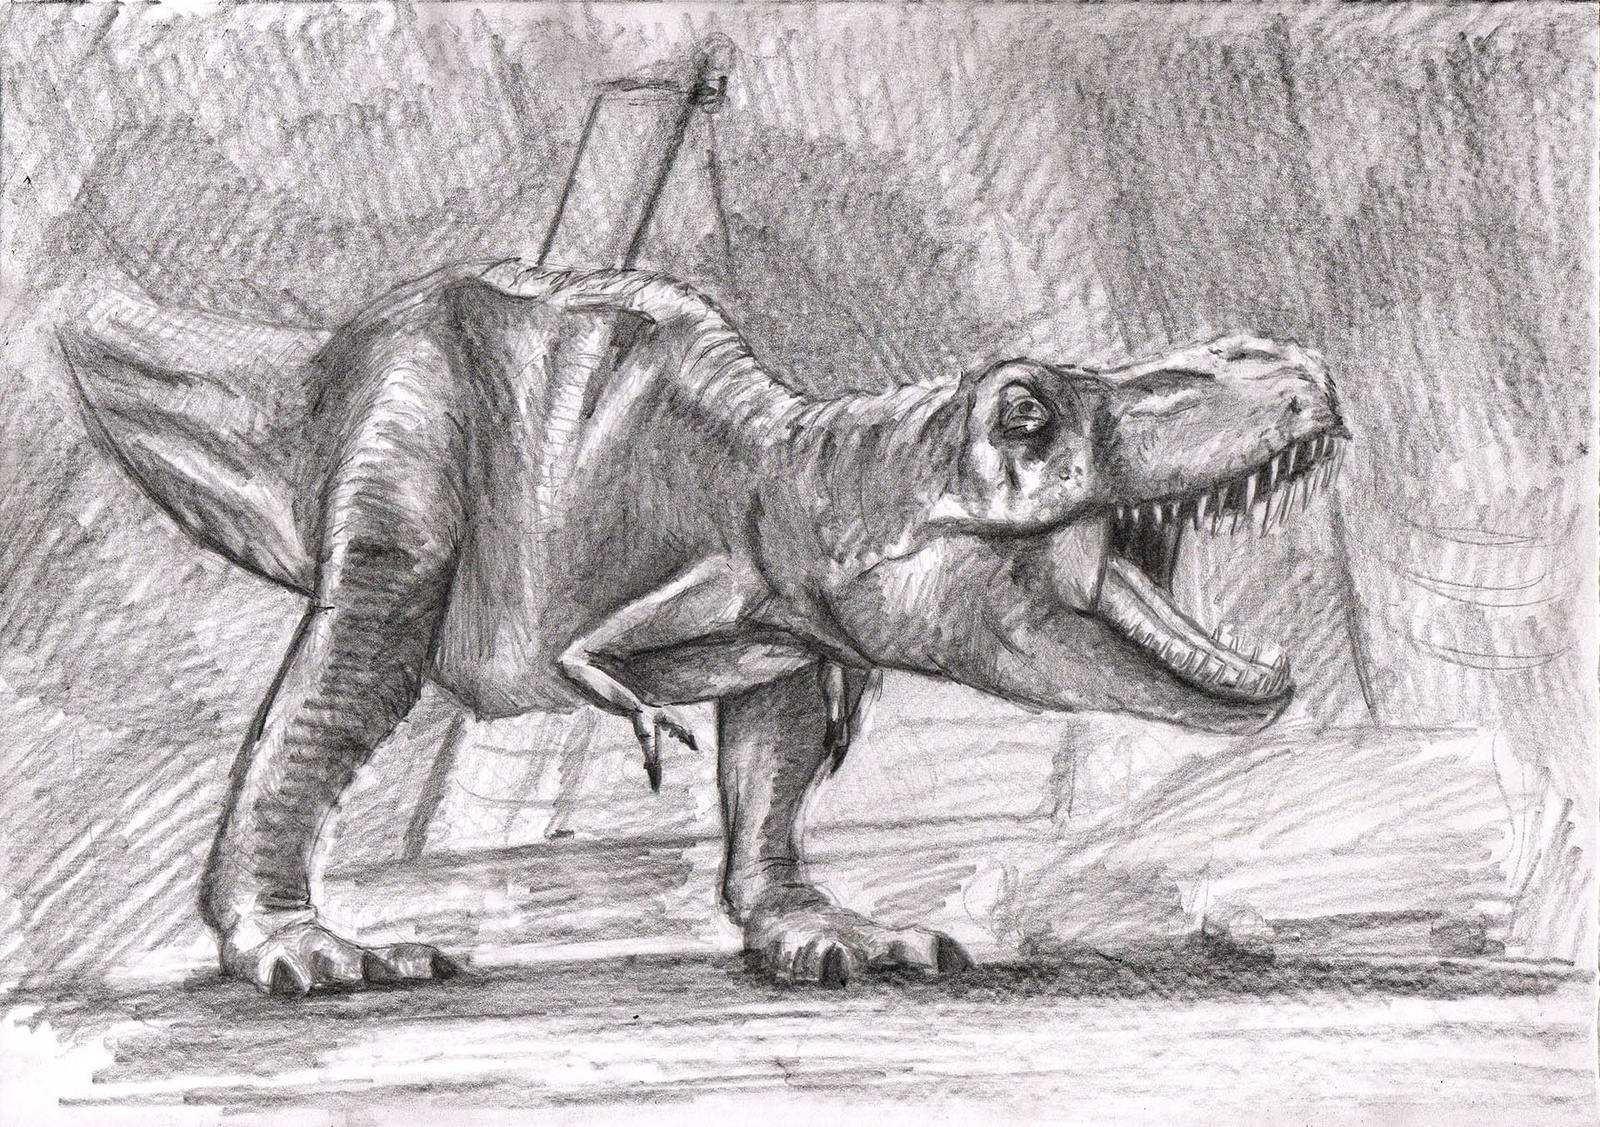 T-Rex from Jurassic Park by Spartan-Ghost on DeviantArt